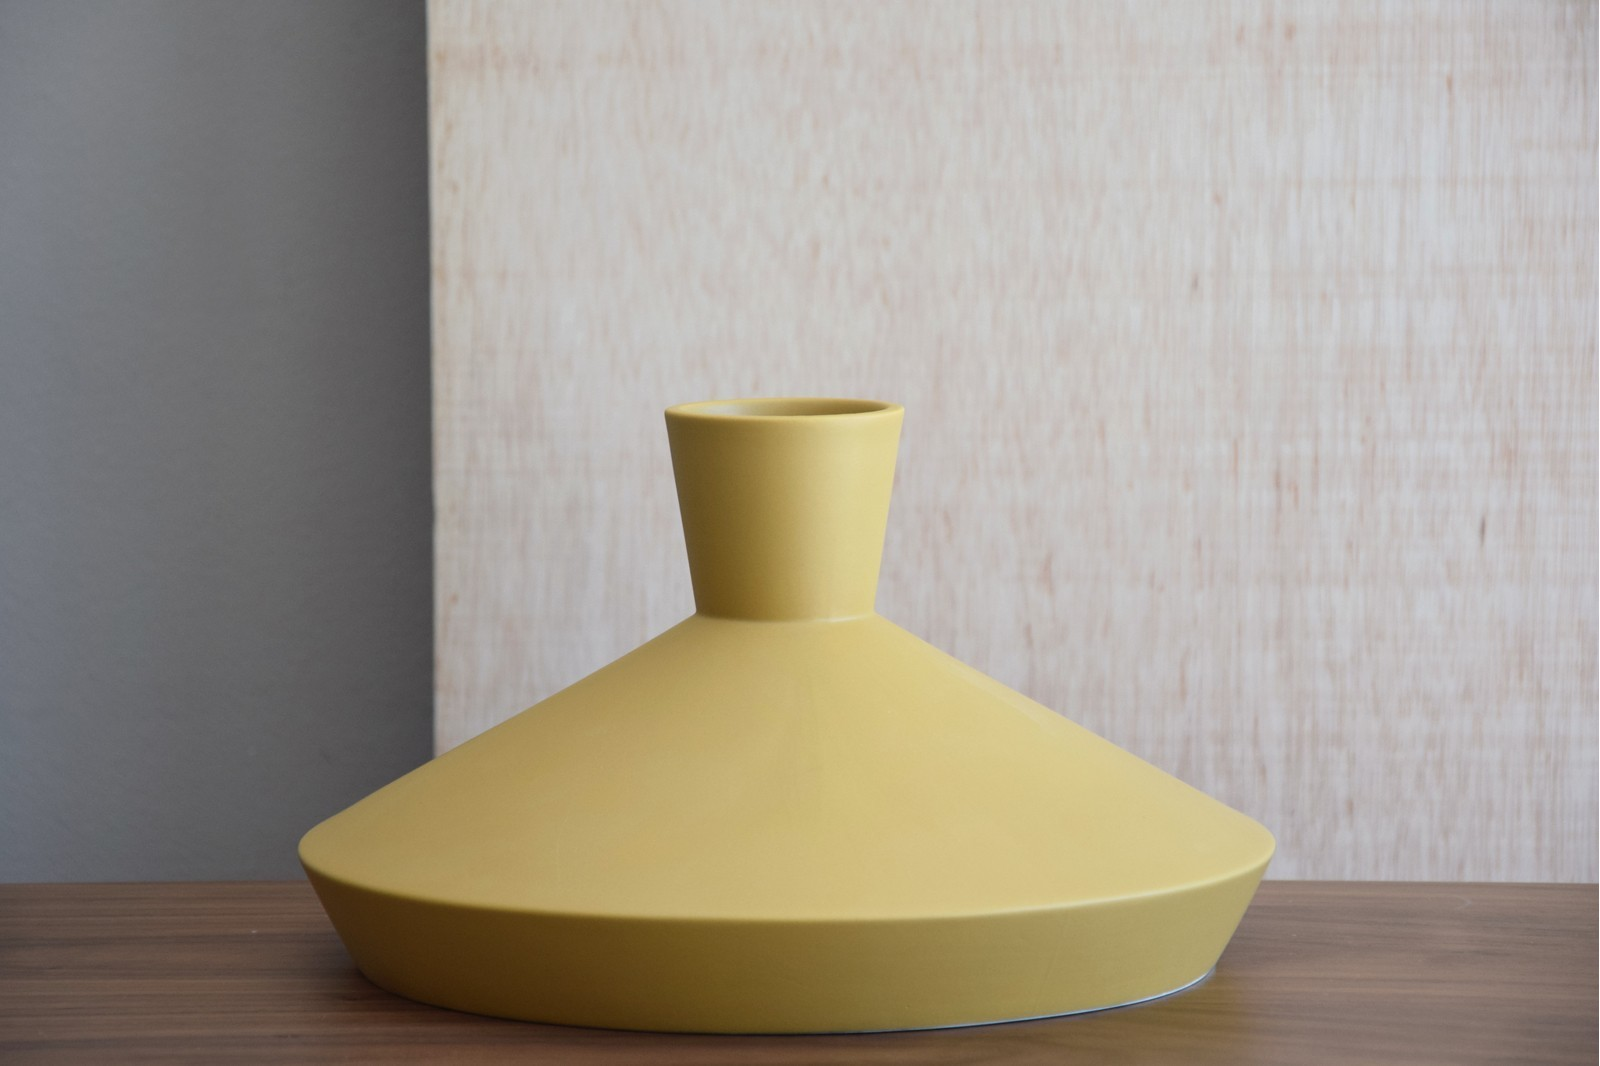 NORDIC COLLECTION: CERAMIC VASES AND CENTREPIECE